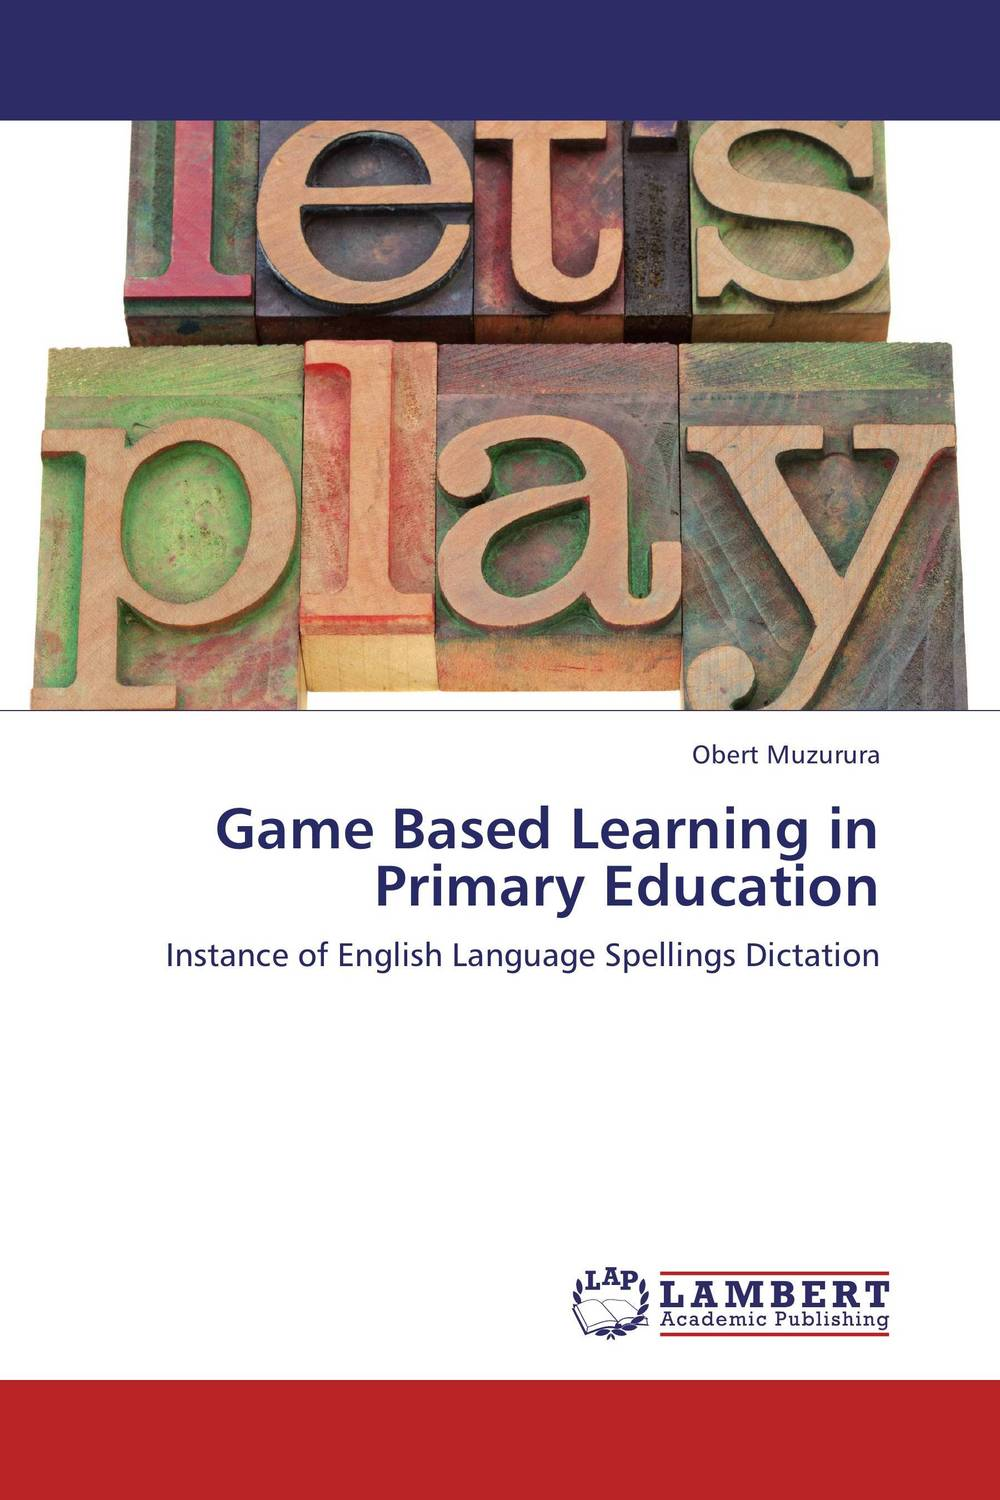 Game Based Learning in Primary Education web based learning in lis